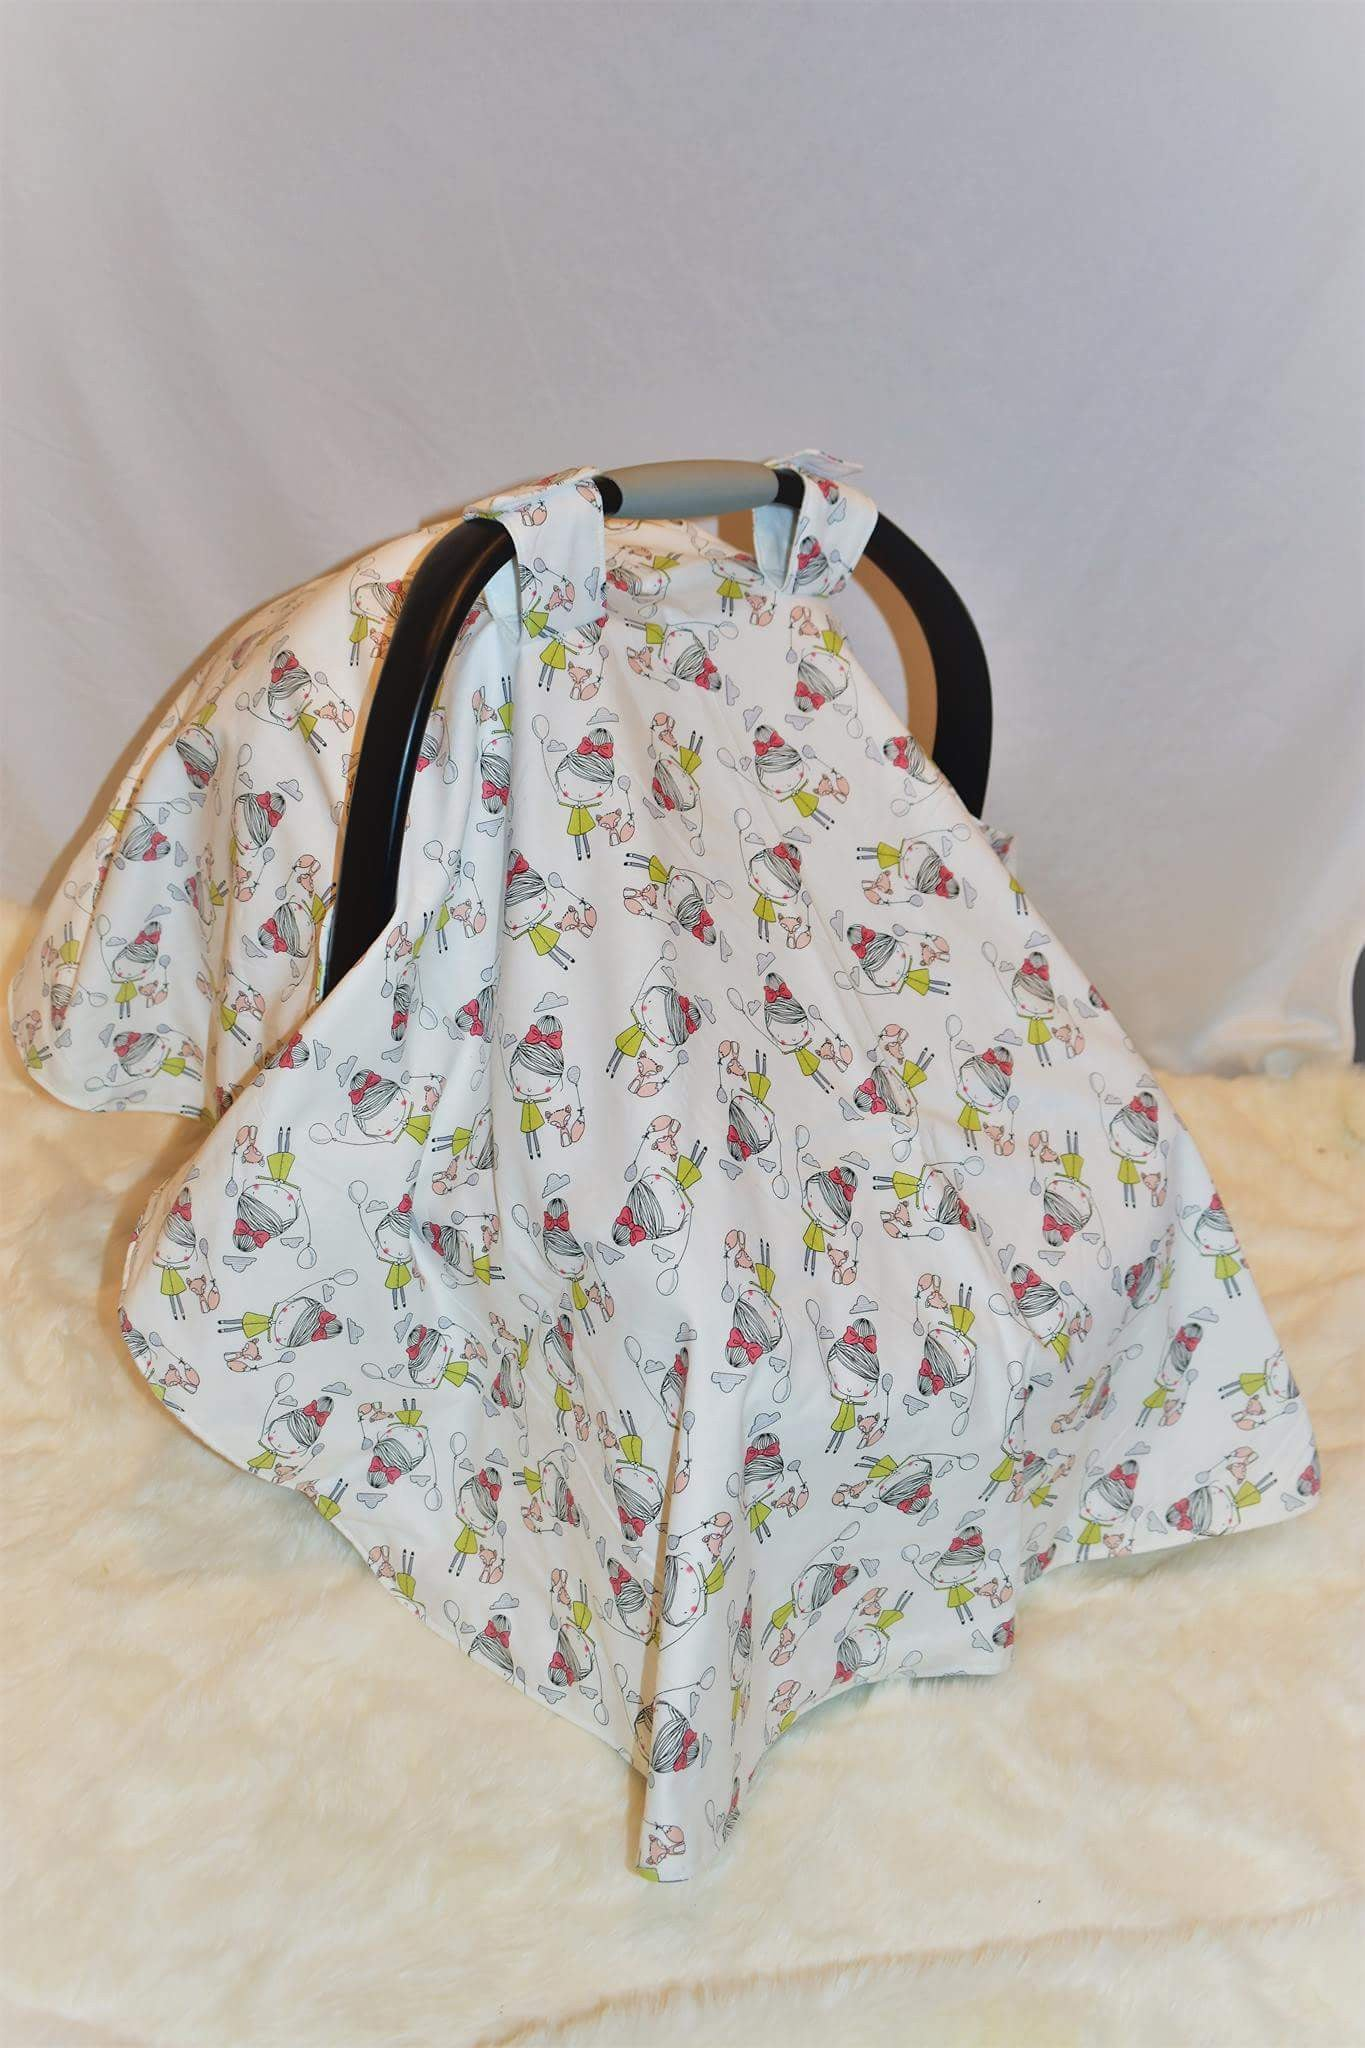 Rosie and Her Fox Car Seat Cover - Le Bébé Chic Boutique